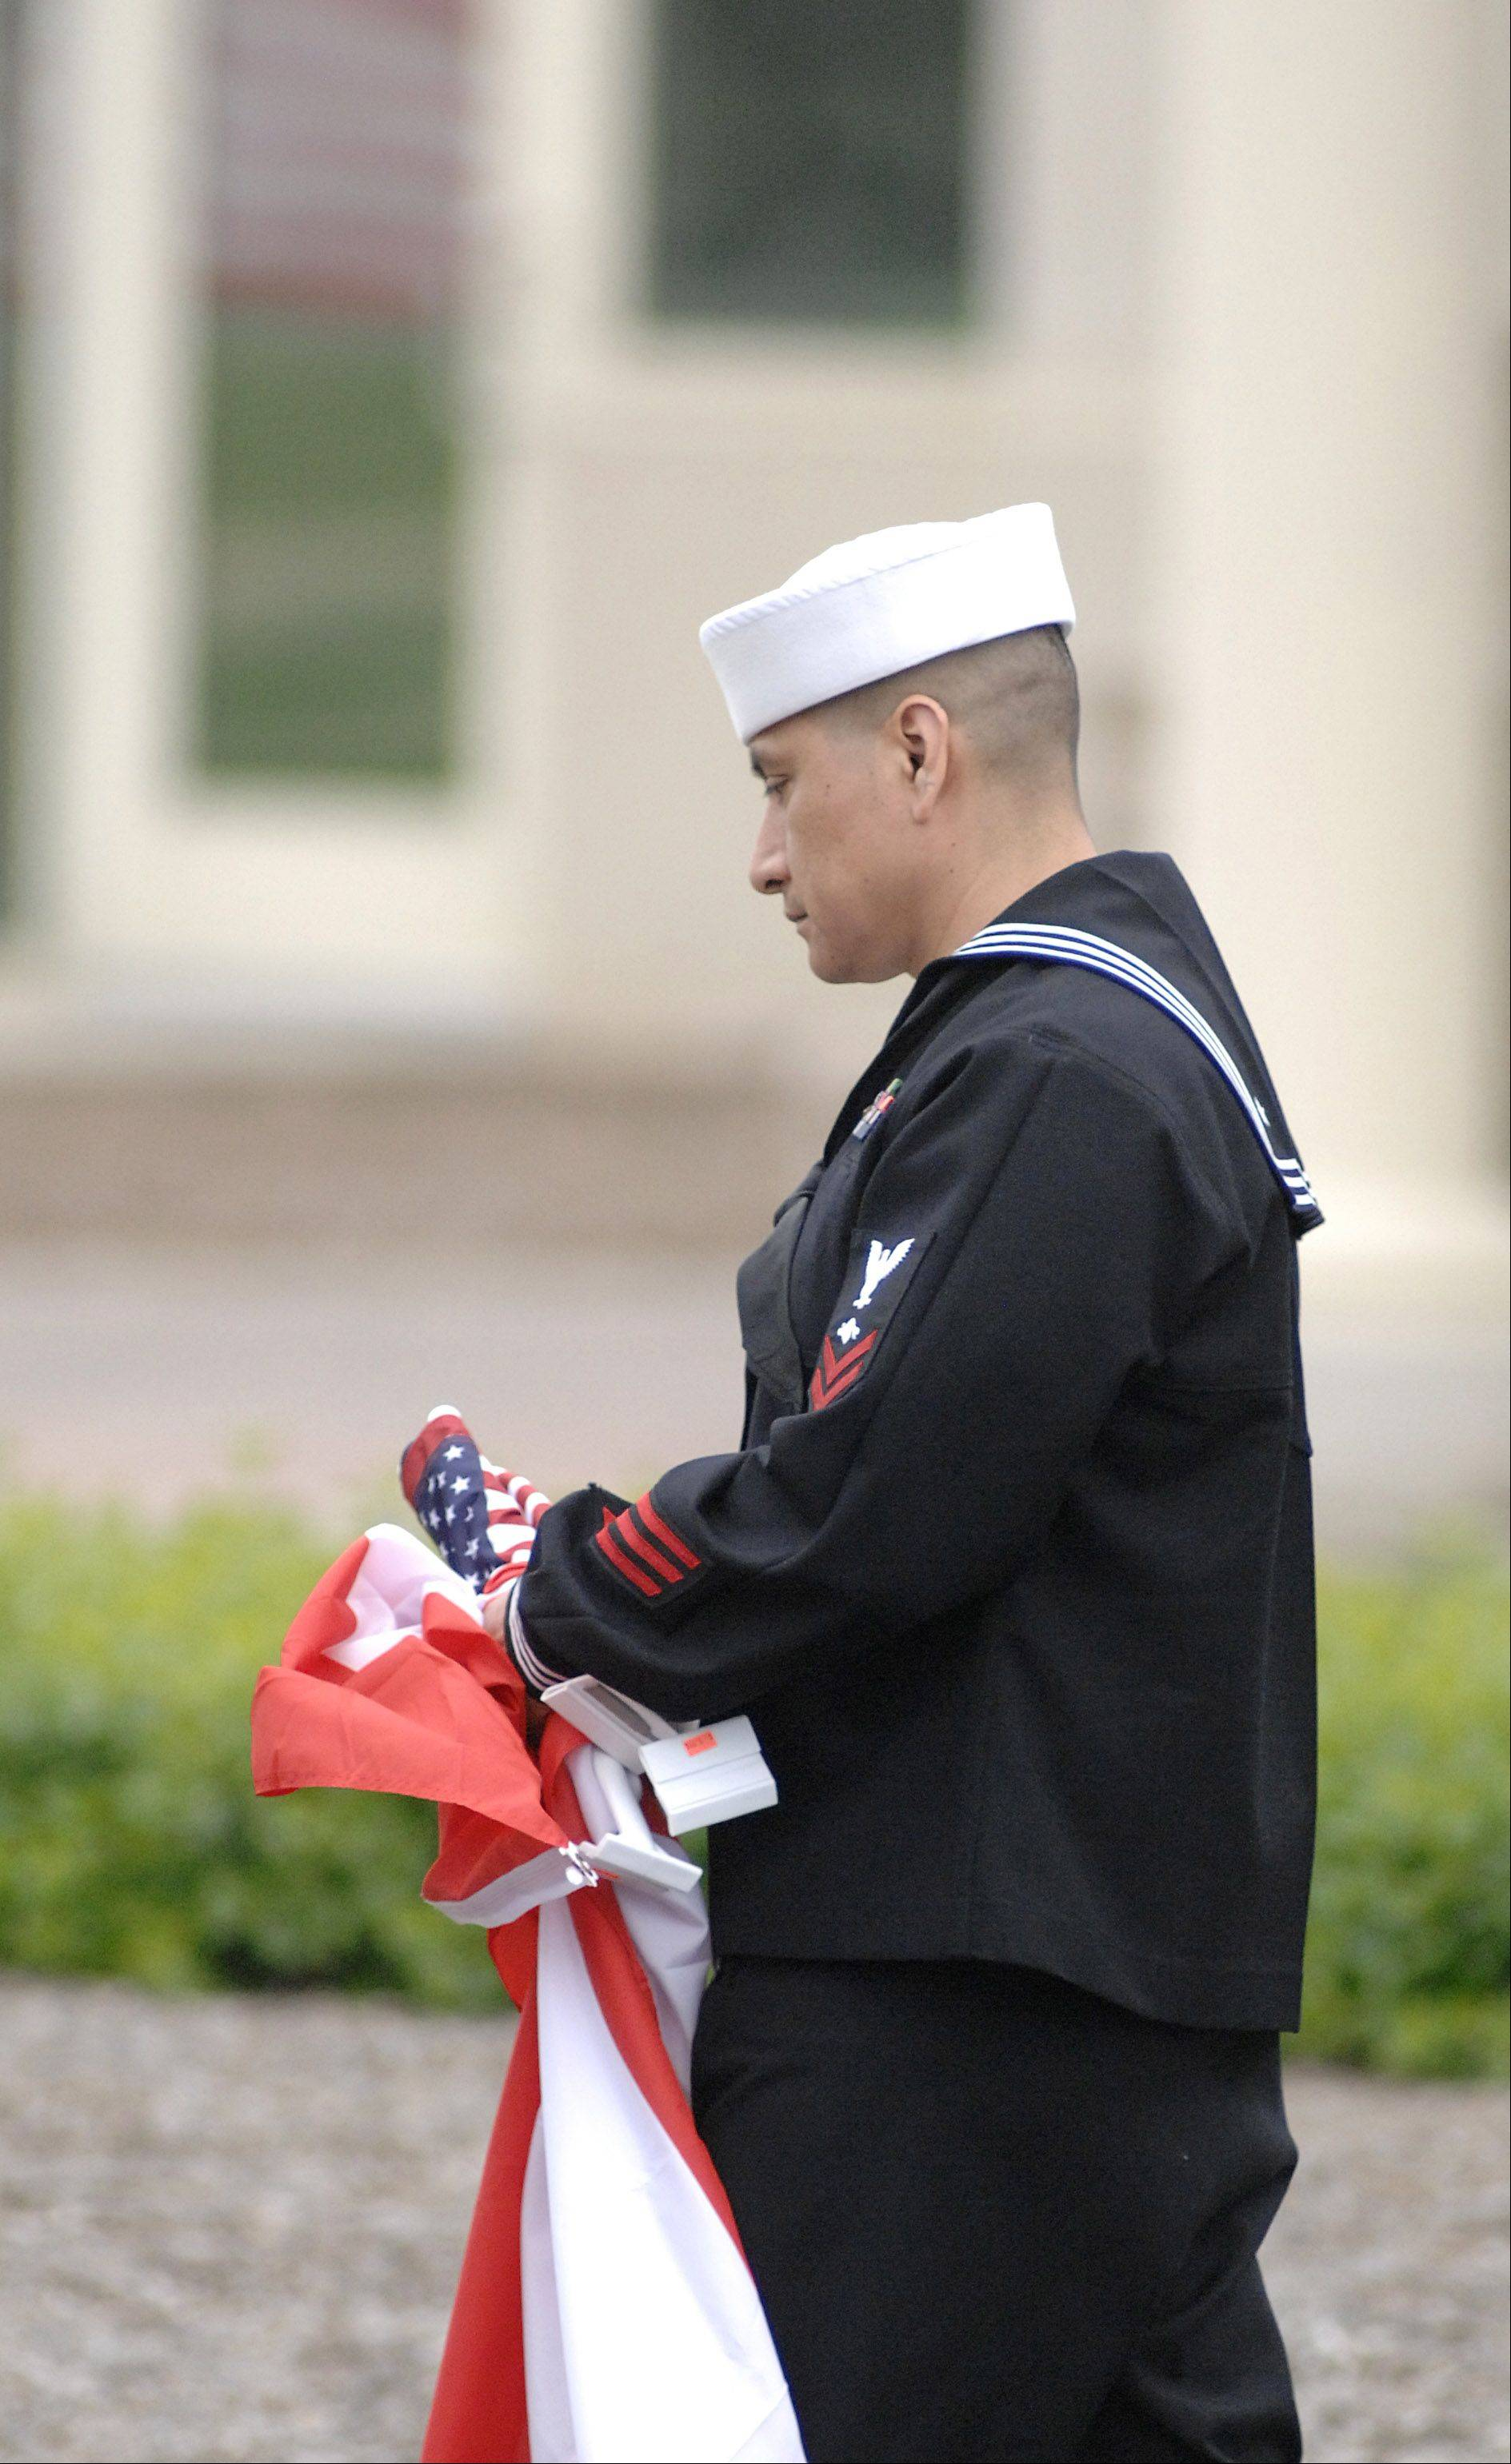 Enrique Martinez of Huntley, father of the late Cpl. Alex Martinez, leaves Life Changers International Church in Hoffman Estates after being presented with flags by a VFW member on Saturday, April 14.